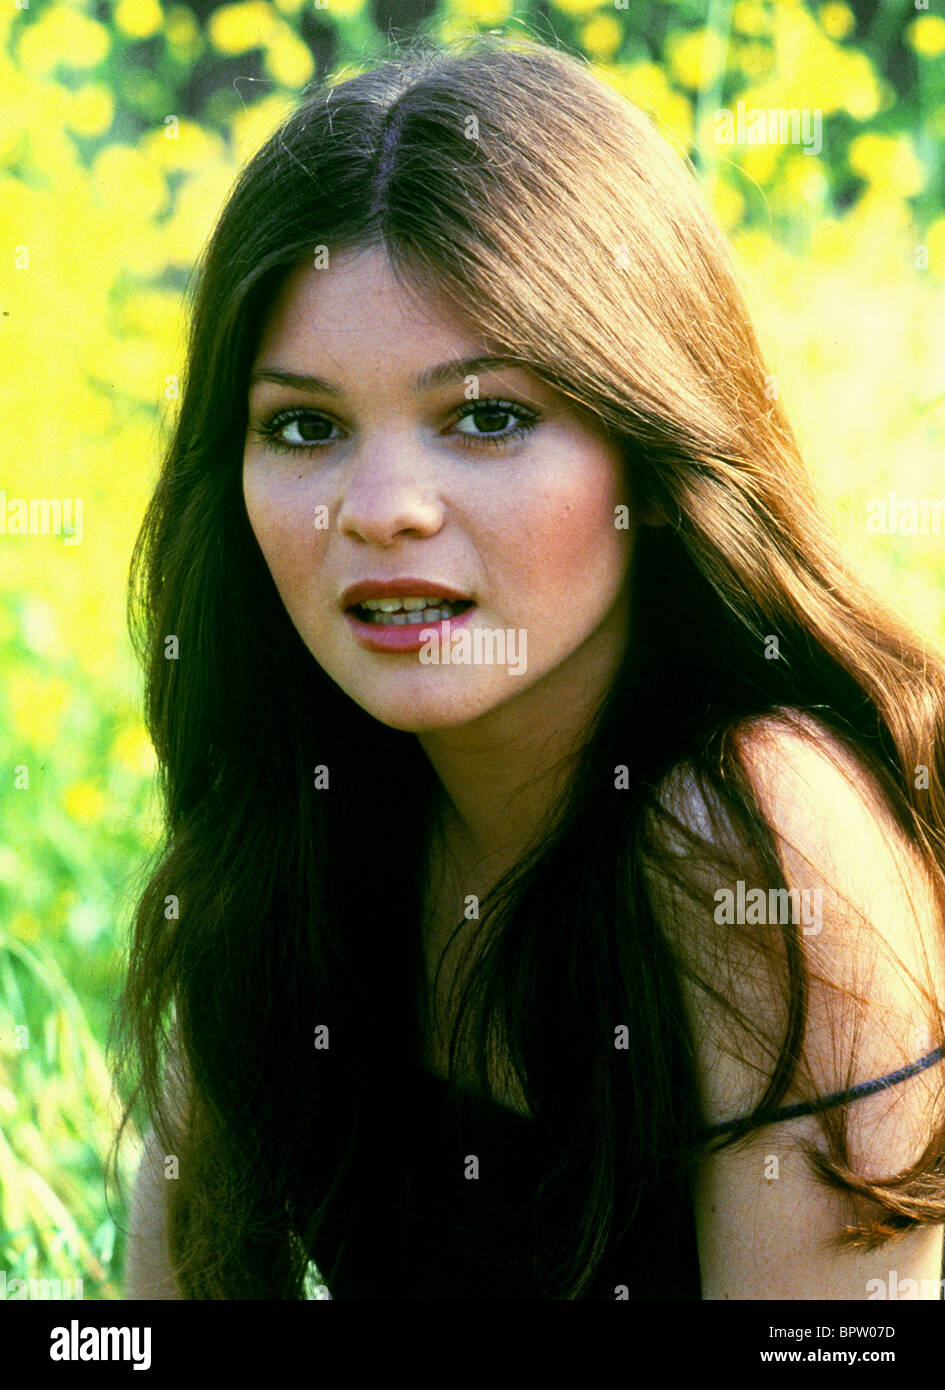 Discussion on this topic: Jolene Anderson born May 26, 1980 (age 38), valerie-bertinelli/